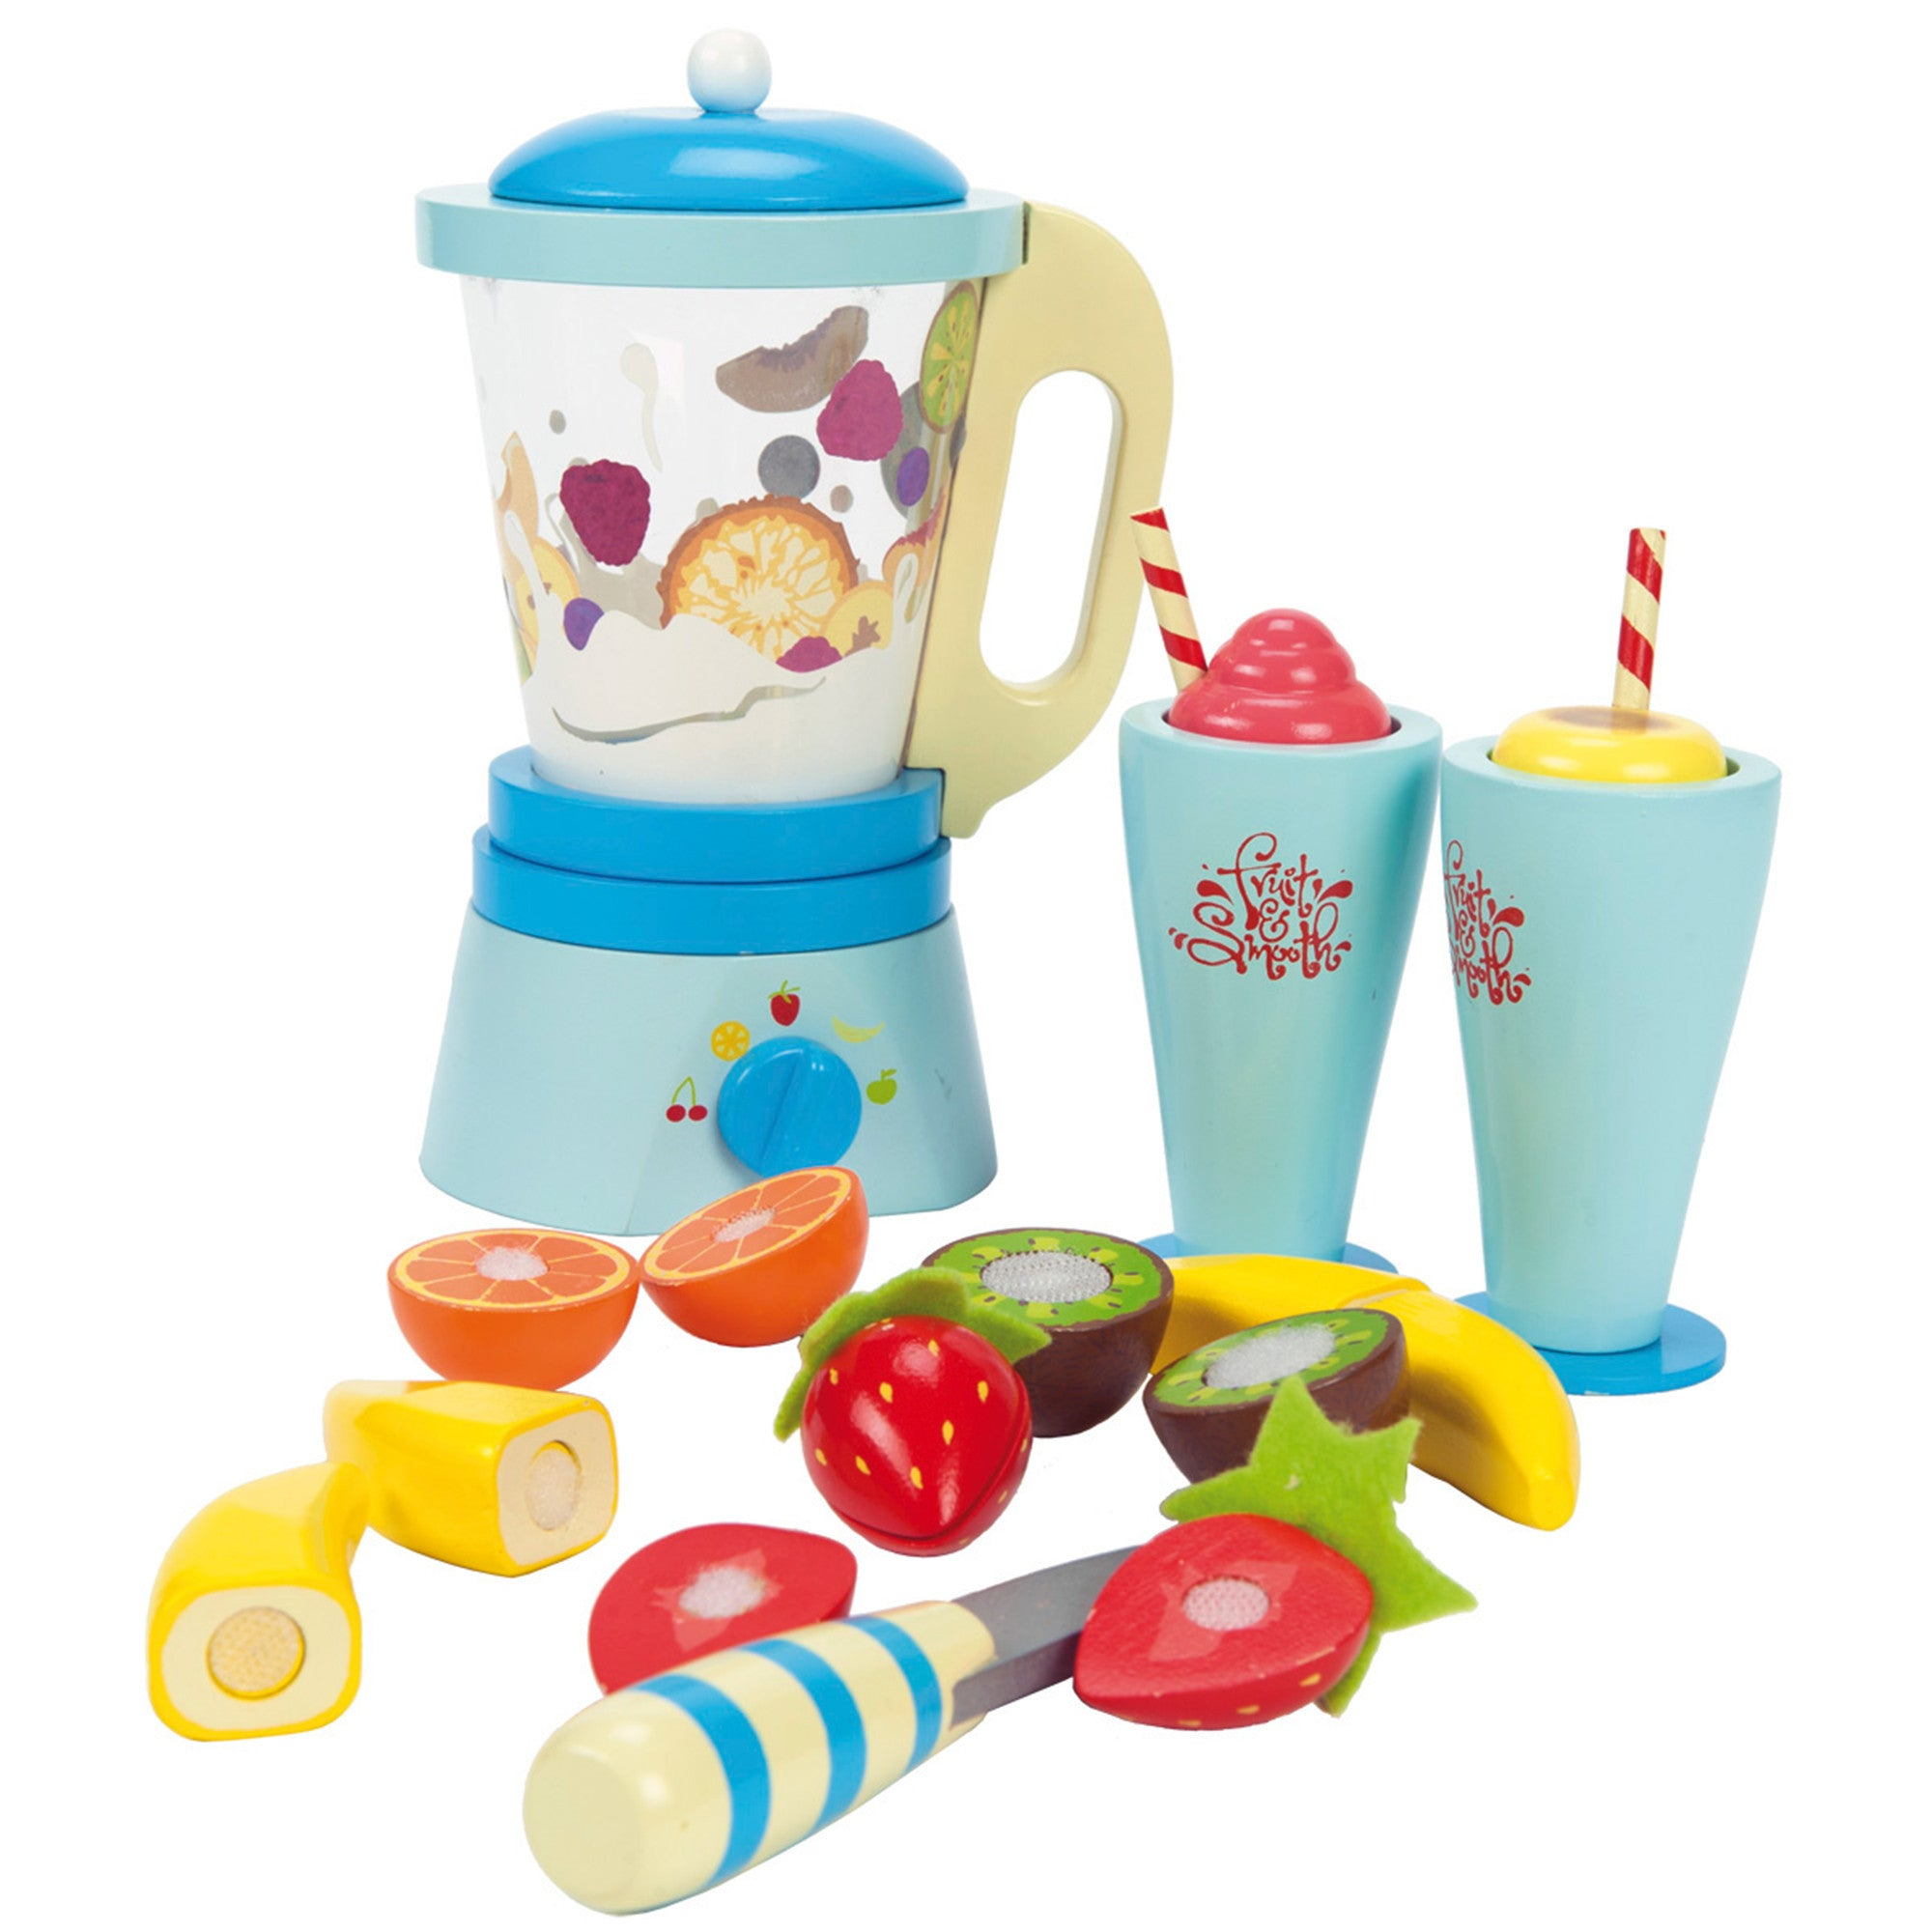 Le Toy Van Fruit and Smooth Blender Set   - Le Toy Van - Little Earth Nest - 1